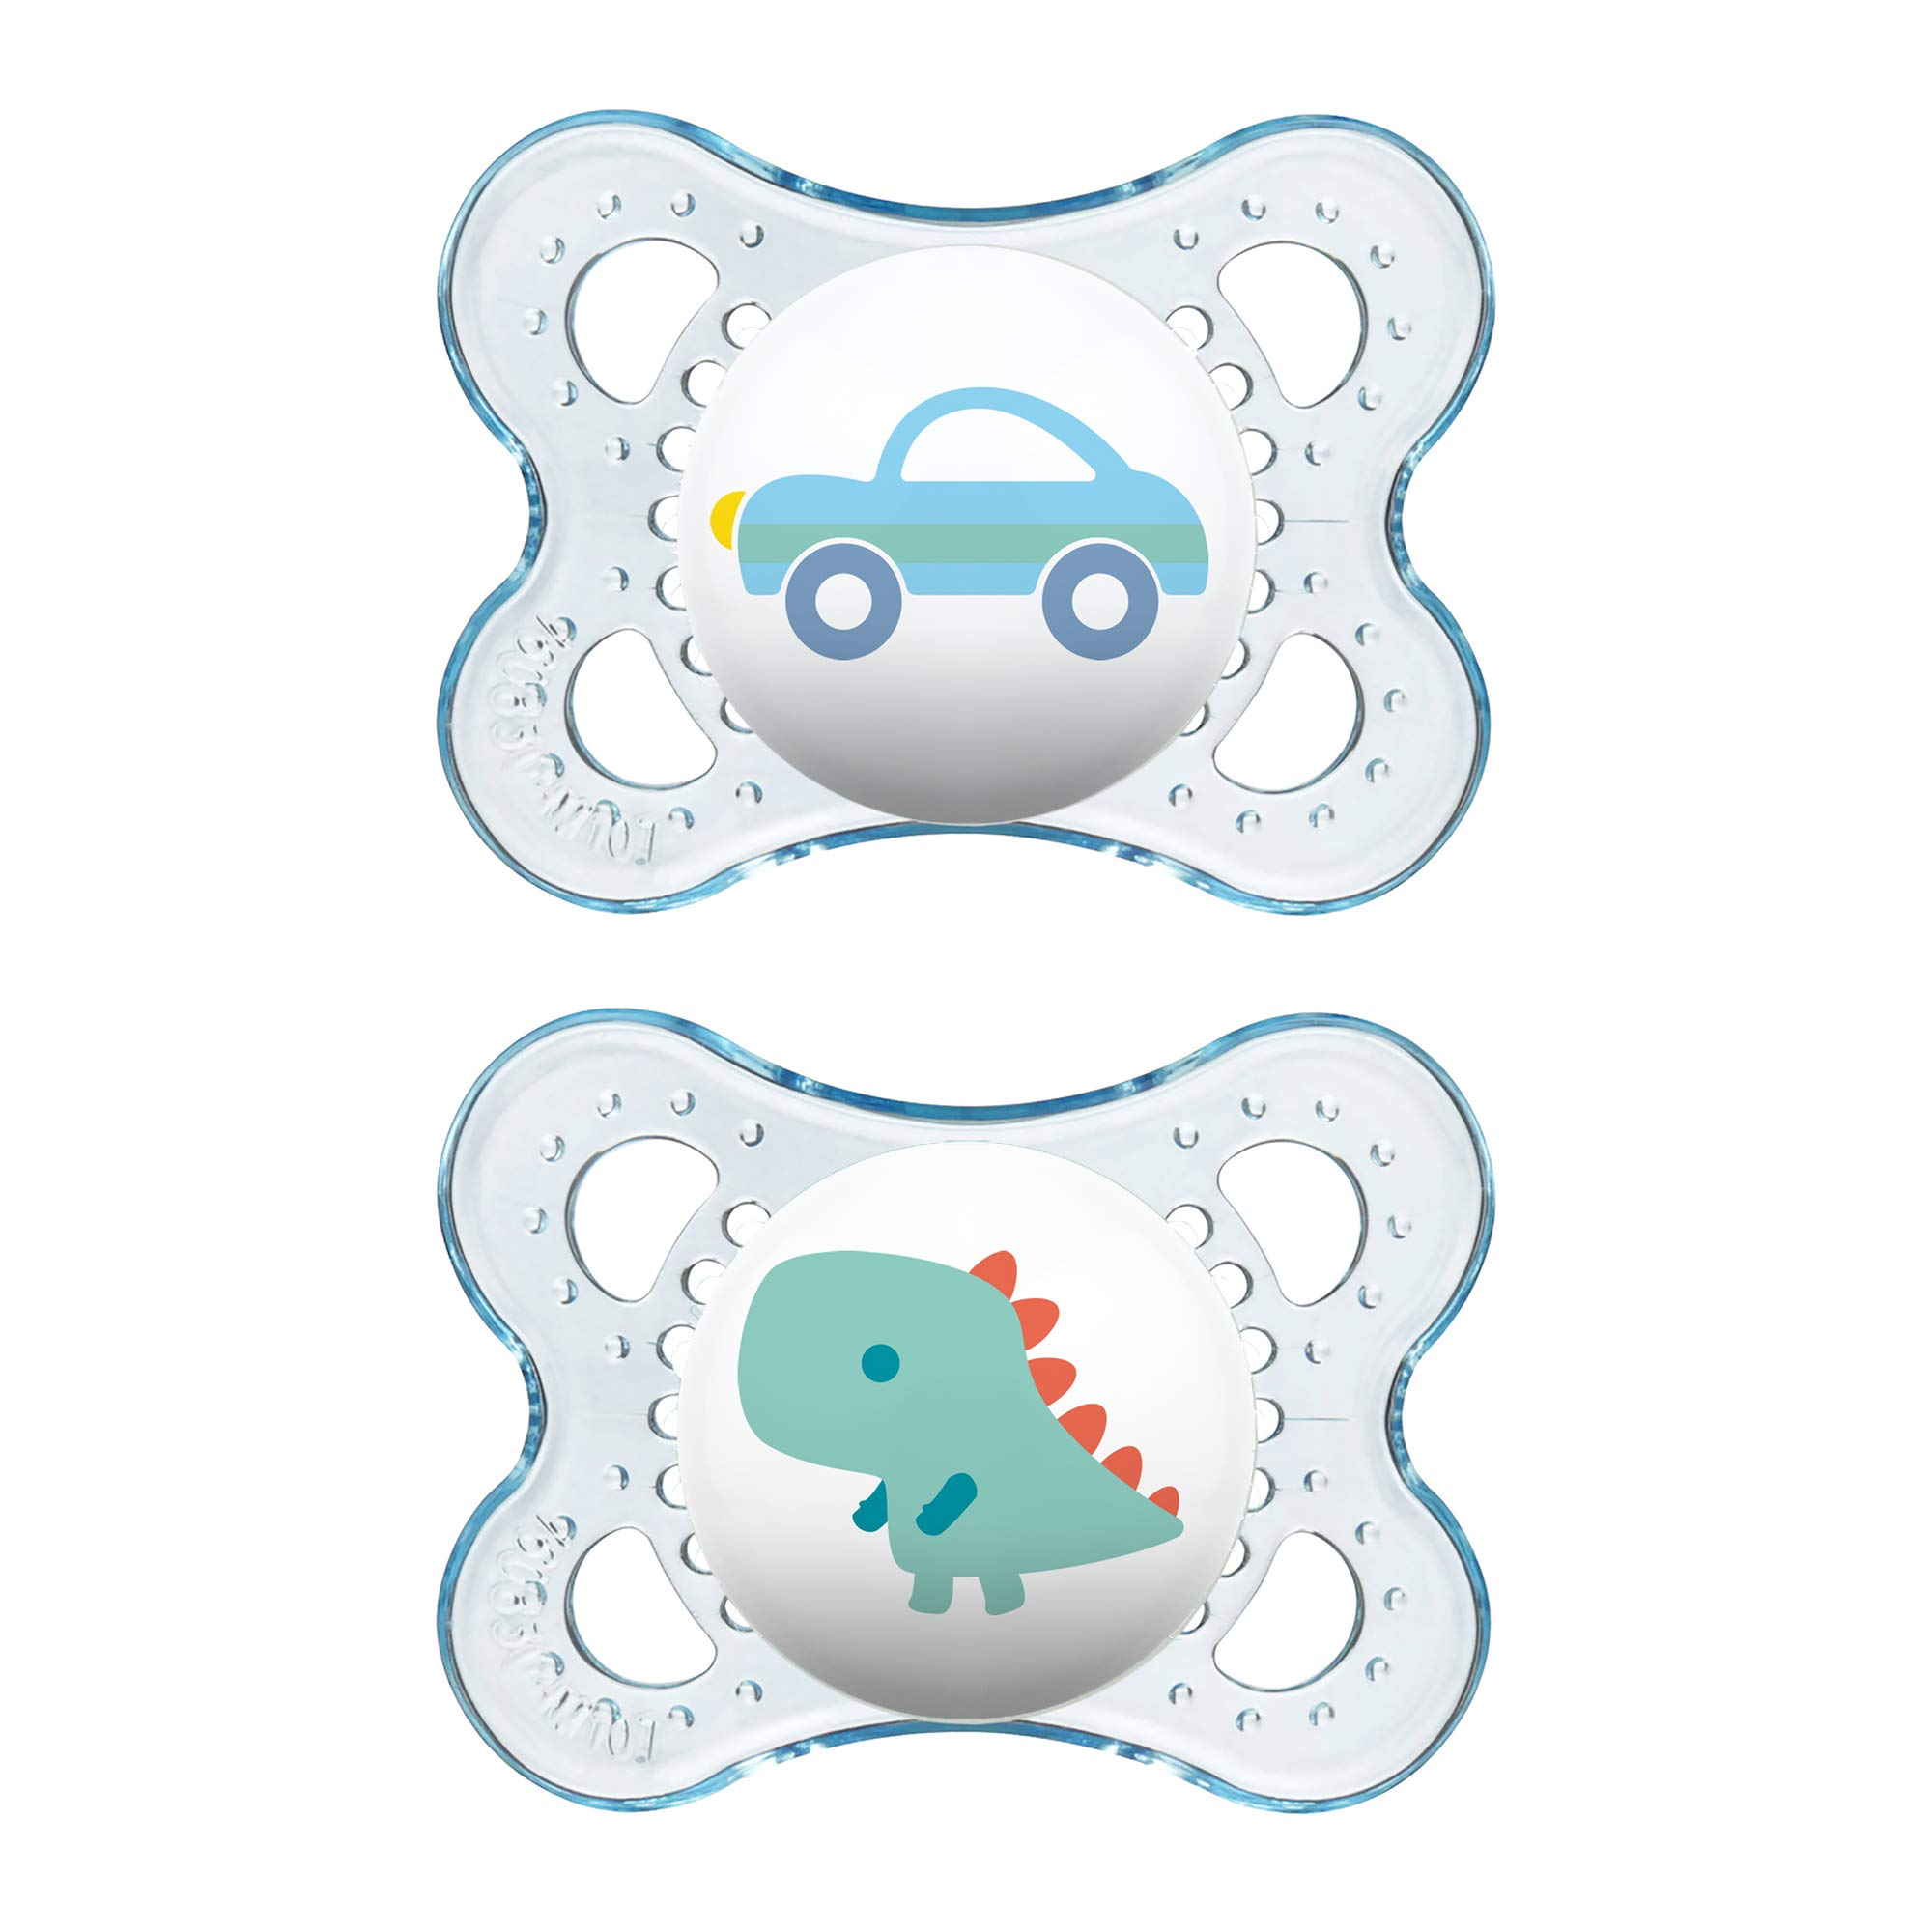 MAM Clear Collection Pacifiers (2 pack, 1 Sterilizing Pacifier Case), MAM Pacifier 0-6 Months, Baby Boy Pacifier, Best Pacifier for Breastfed Babies